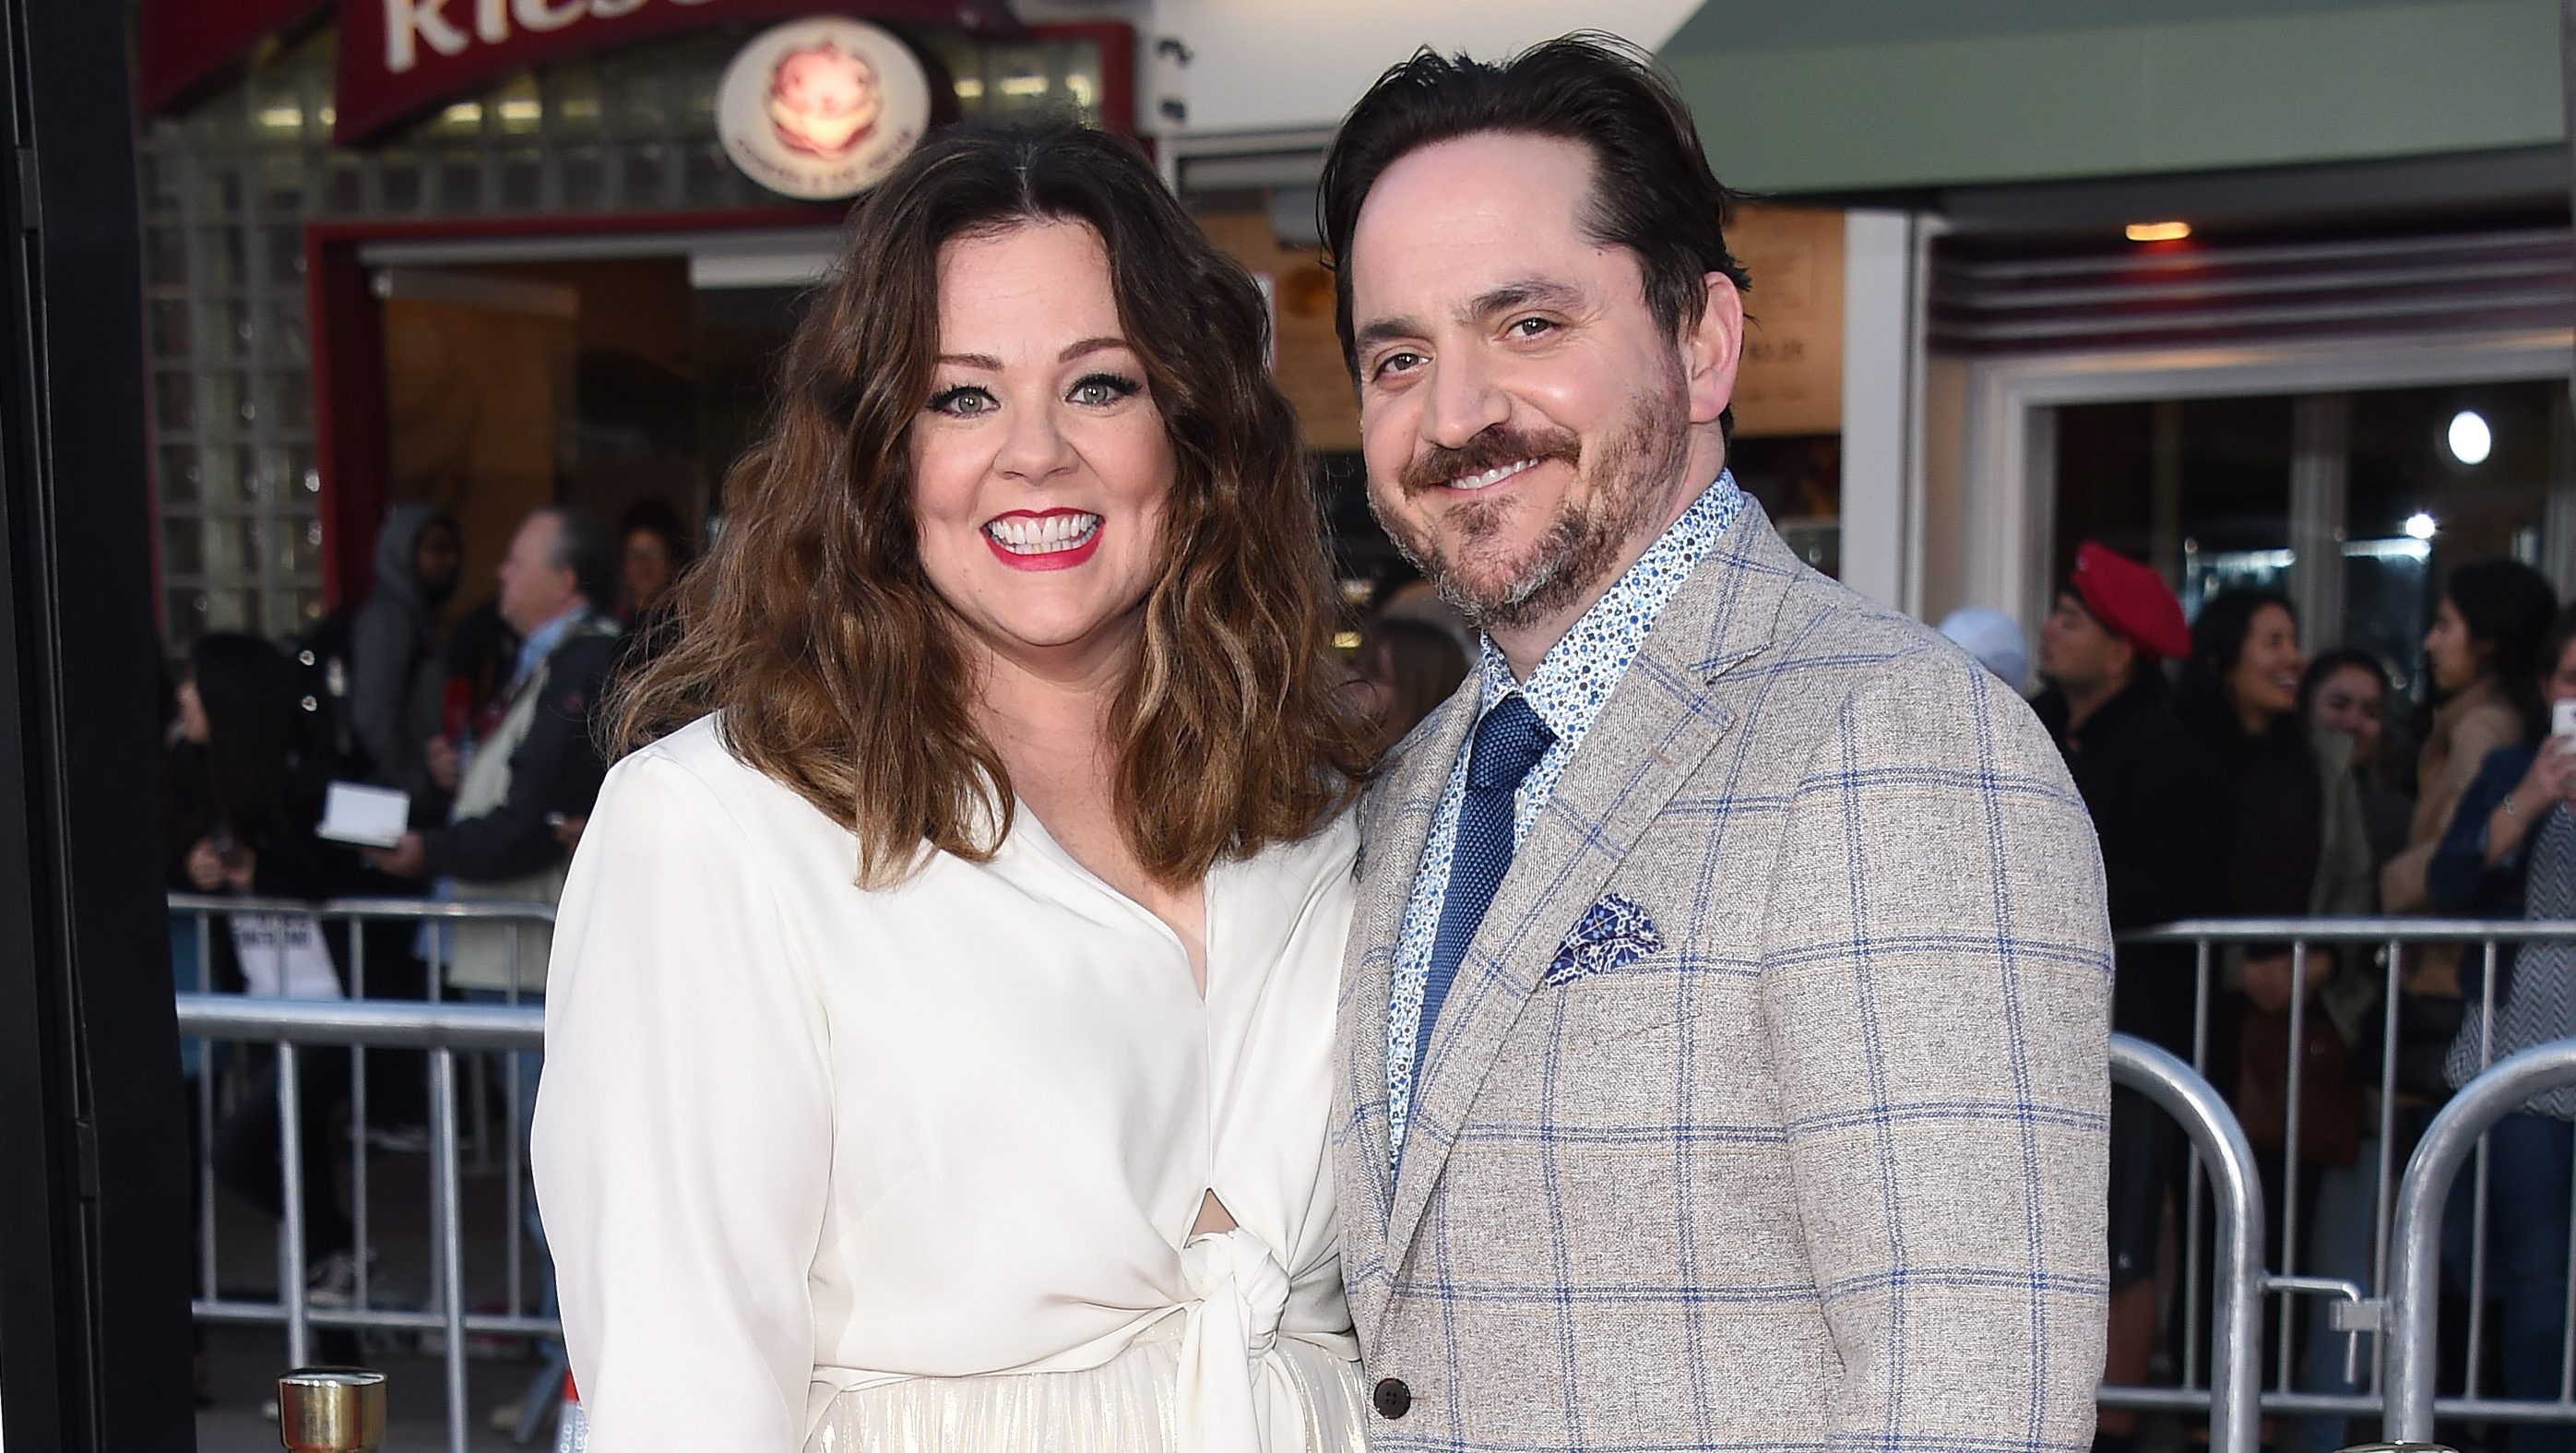 Melissa McCarthy Ben Falcone On Moving Superintelligence HBO Max – Deadline